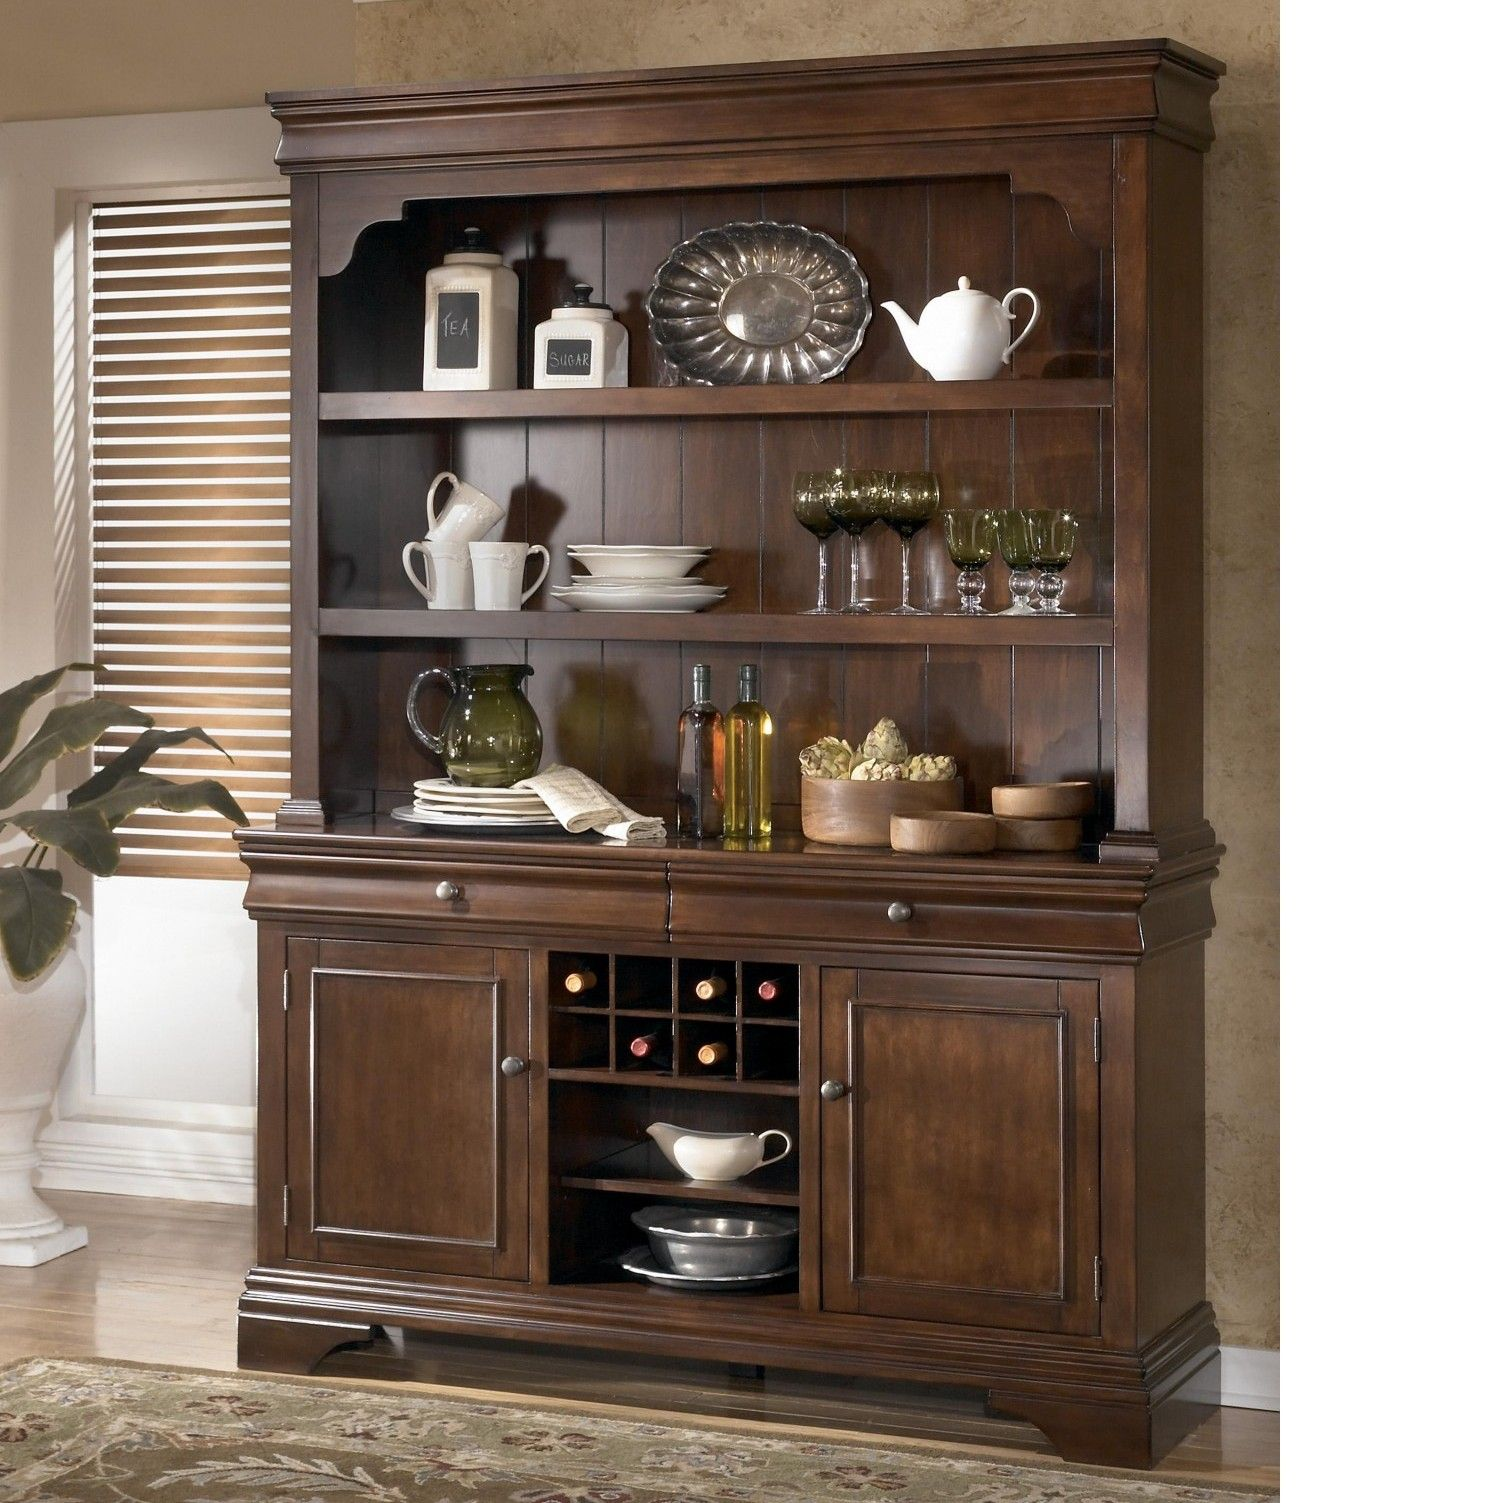 Superbe ... Dining Room Corner Hutch Cabinet Also Stylish Dining Room Hutch Modern Dining  Room Hutch Used Hutch For Saleu201a Dining Room Hutch Decorating Ideasu201a How ...